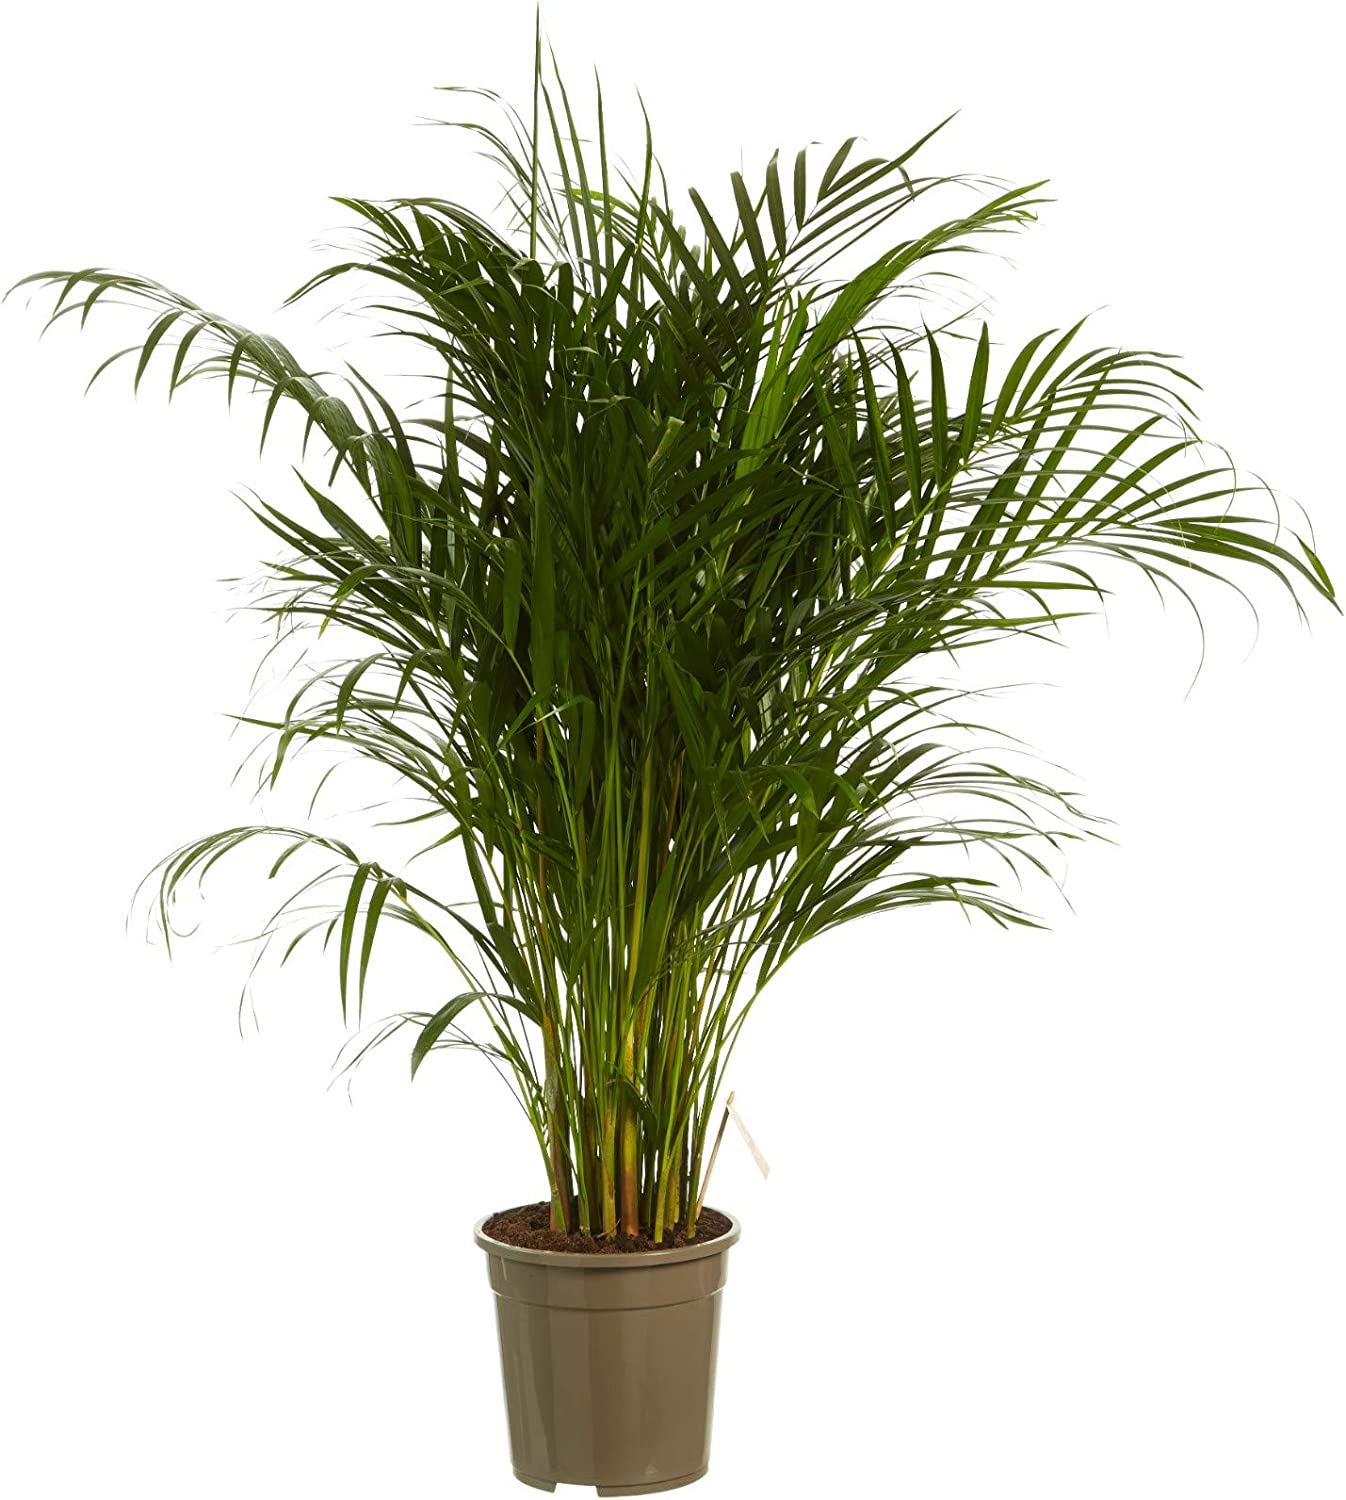 Areca//Dypsis lutescens Golden Cane Palm with Anthracite Pot as a Set BOTANICLY Indoor Plant Height: 100 cm